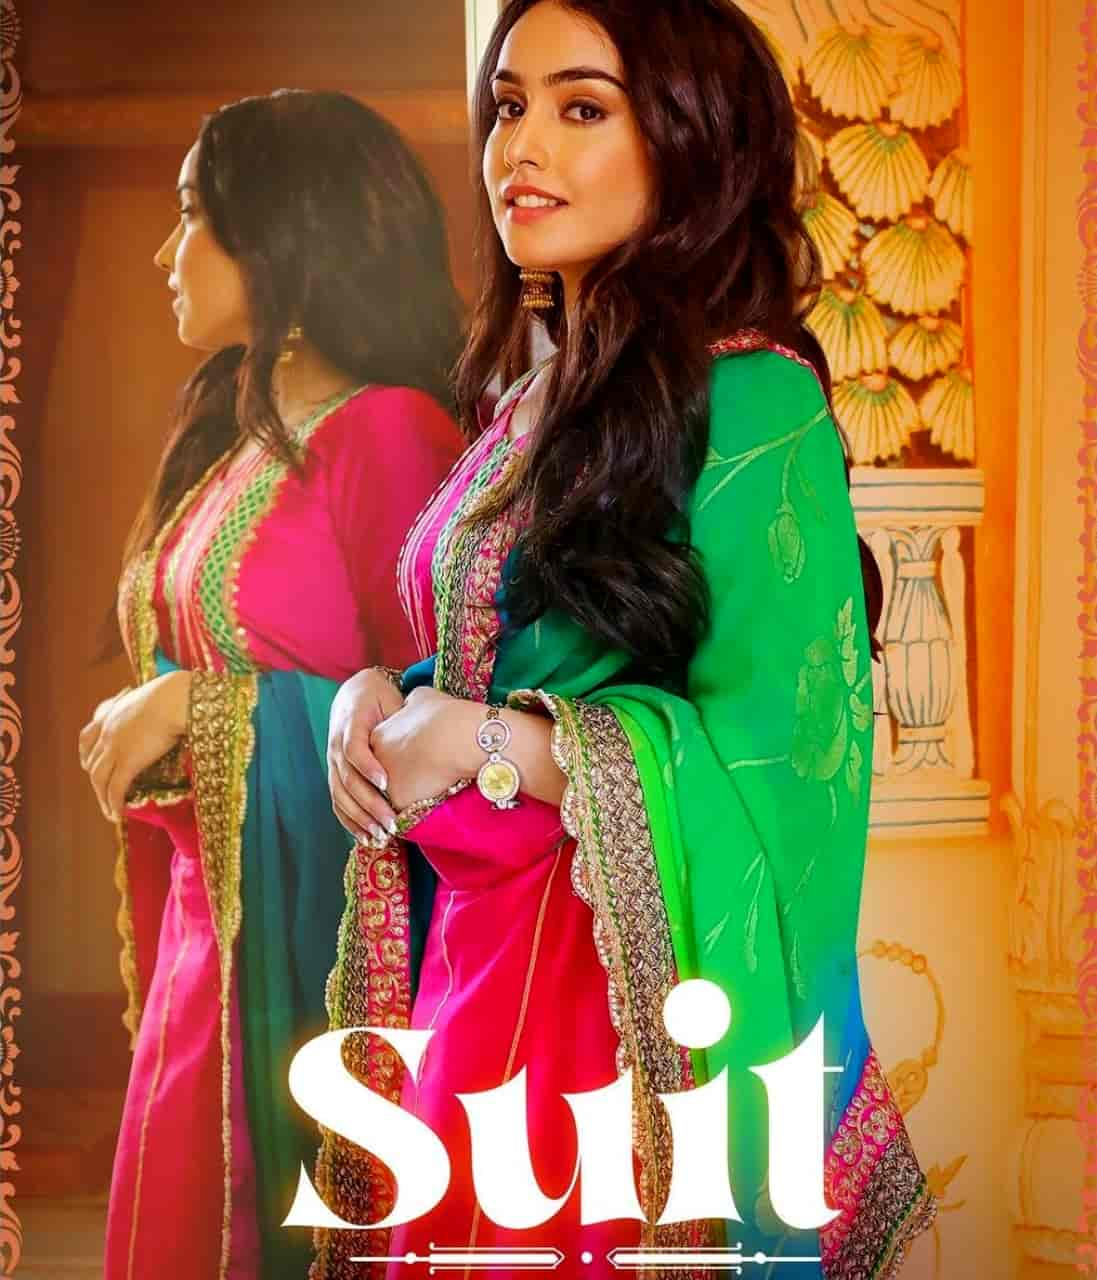 Suit Punjabi Song Image Features Barbie Maan